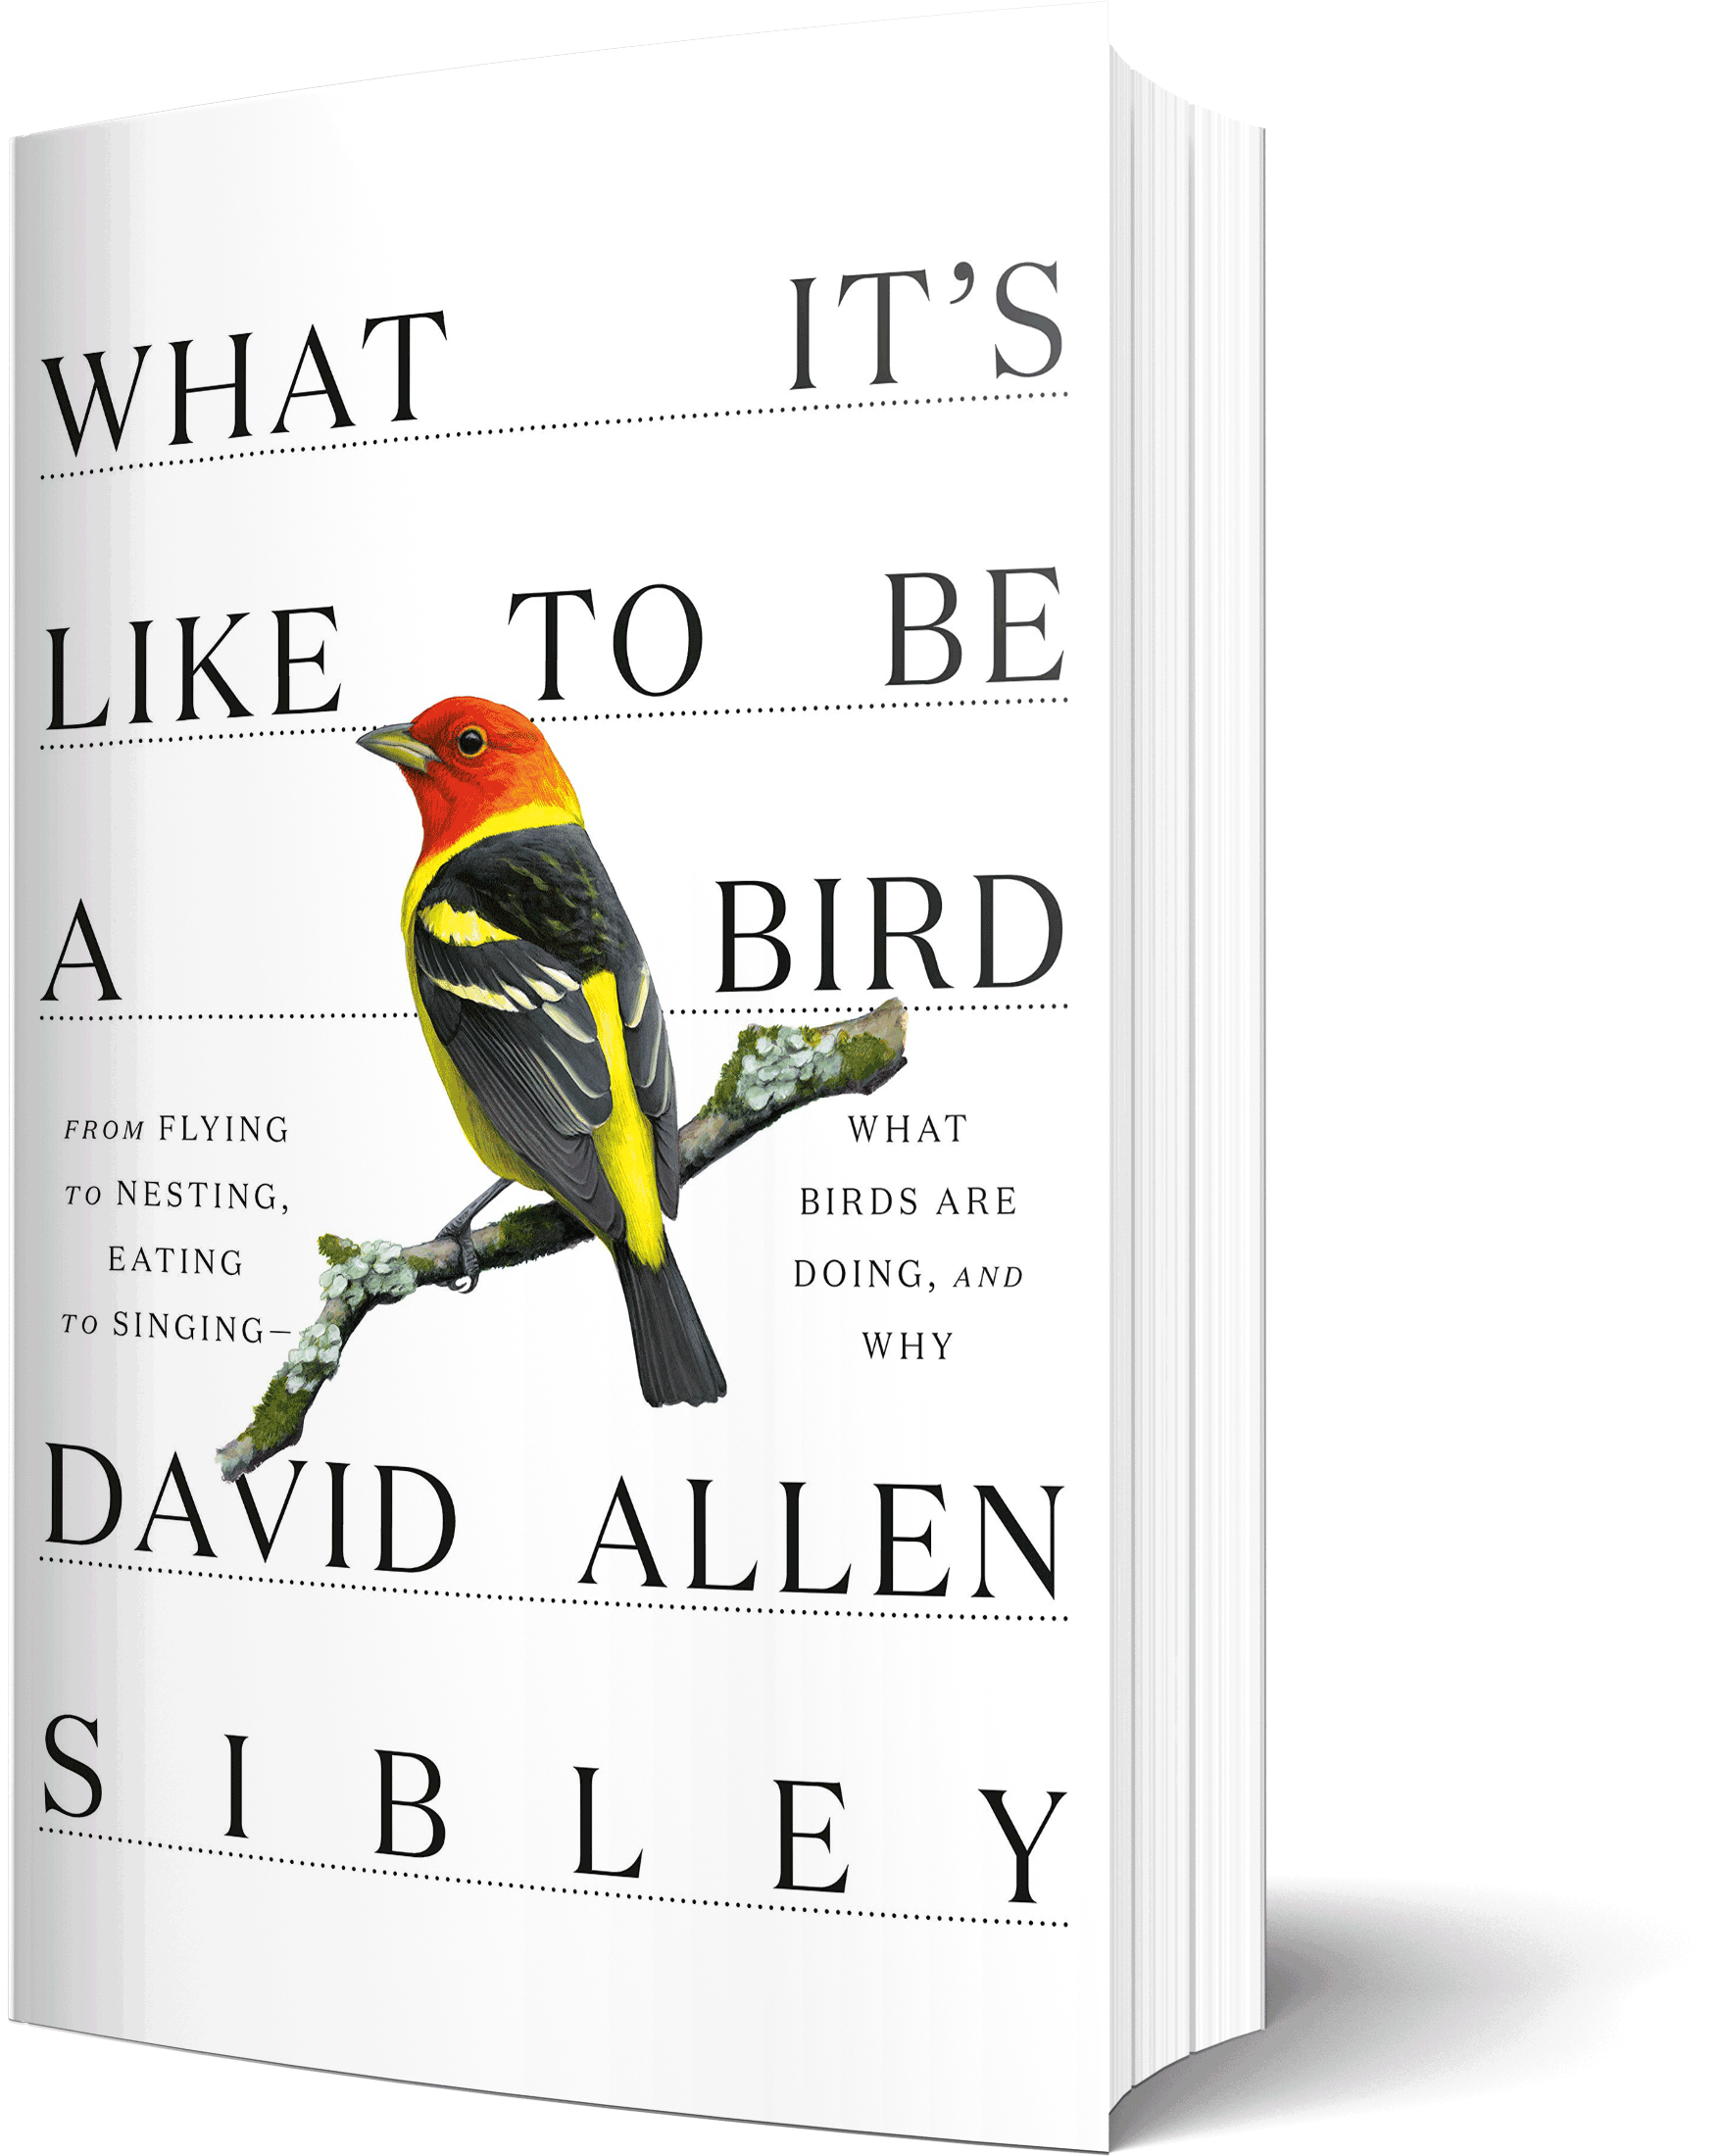 Book Recommendation: What It's Like to be a Bird